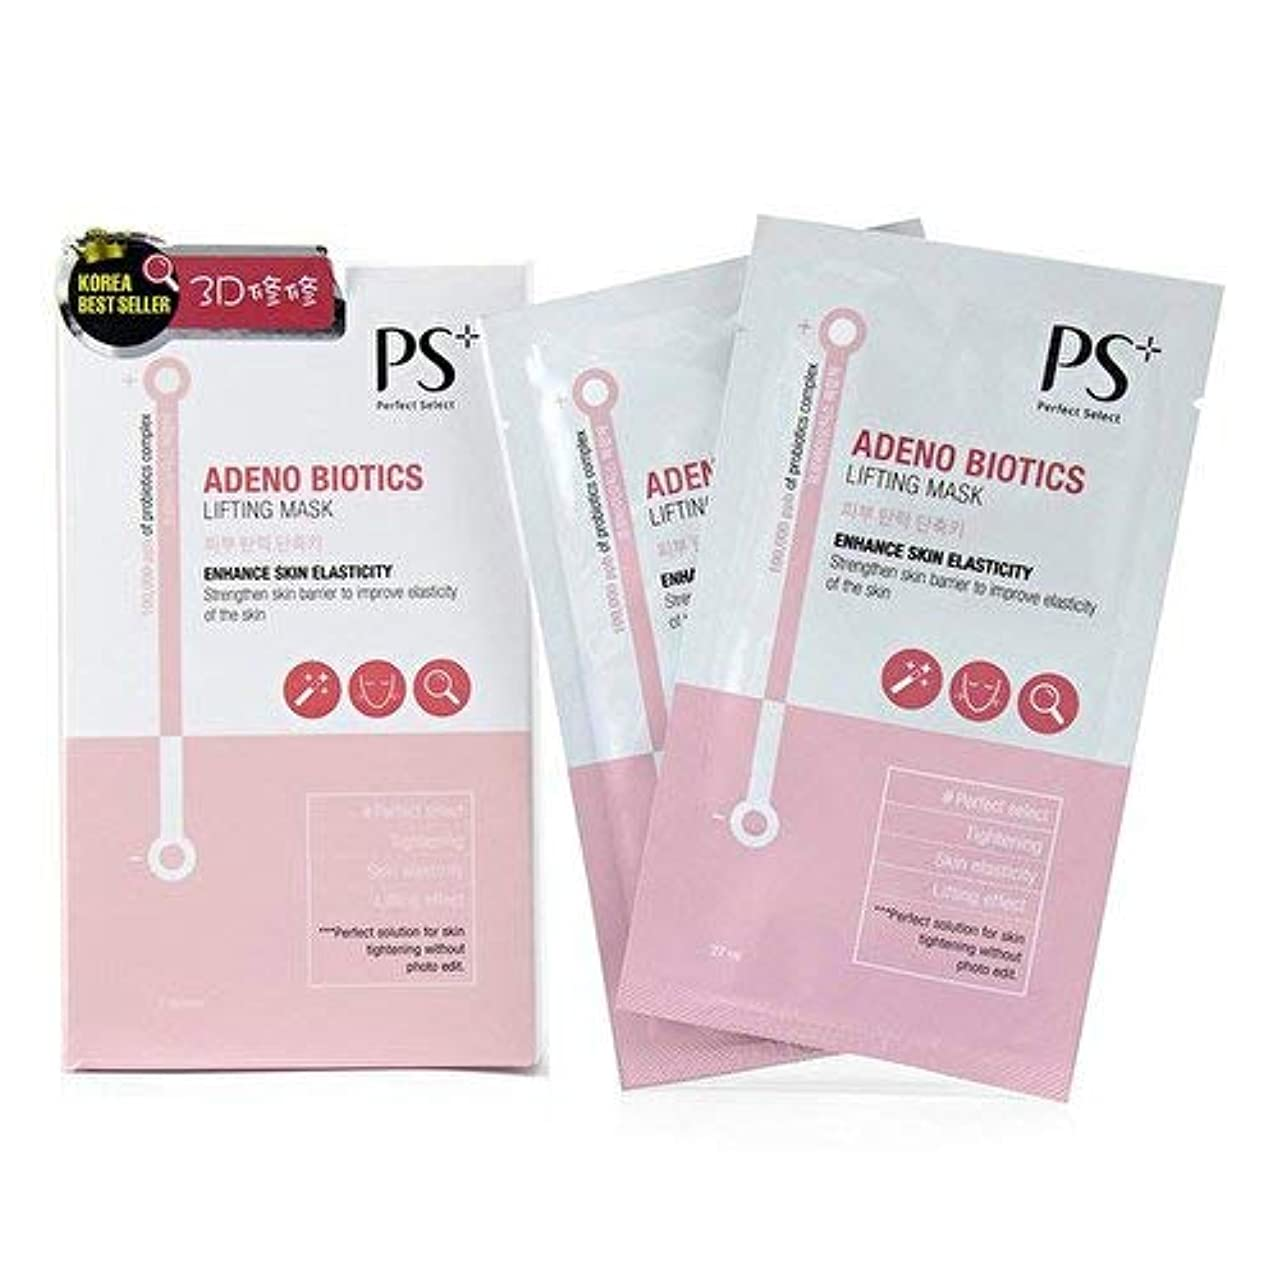 フィヨルド削減未知のPS Perfect Select Adeno Biotics Lifting Mask - Enhance Skin Elasticity 7pcs並行輸入品